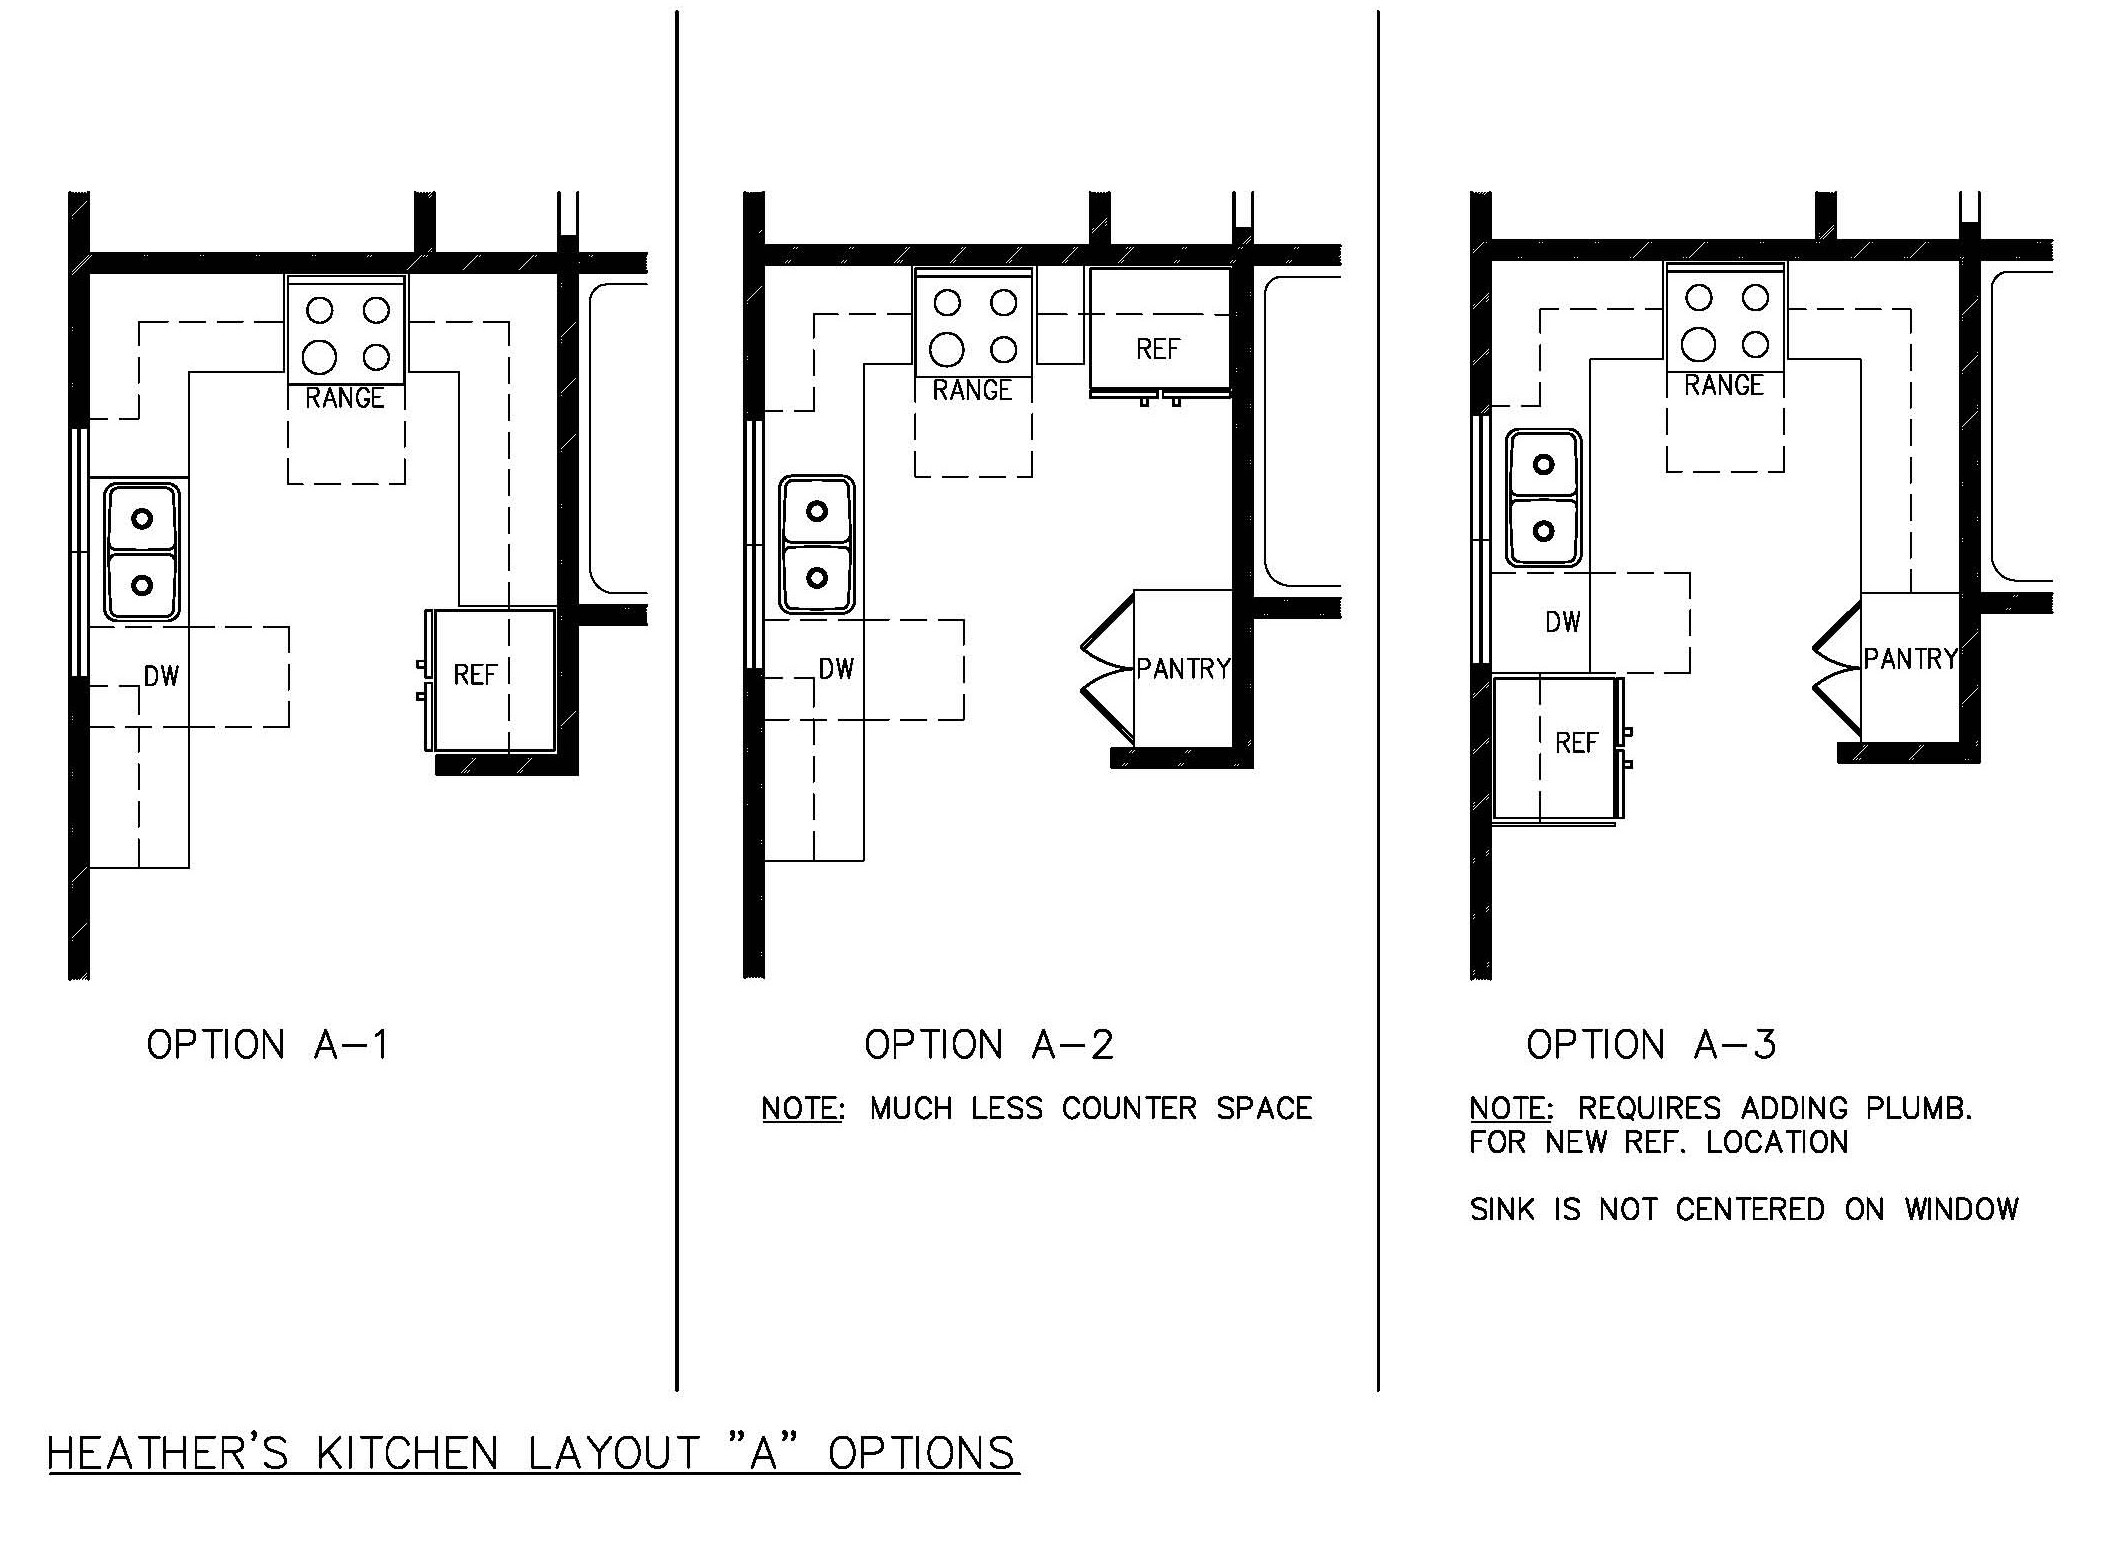 small kitchen design layout ideas photo - 1